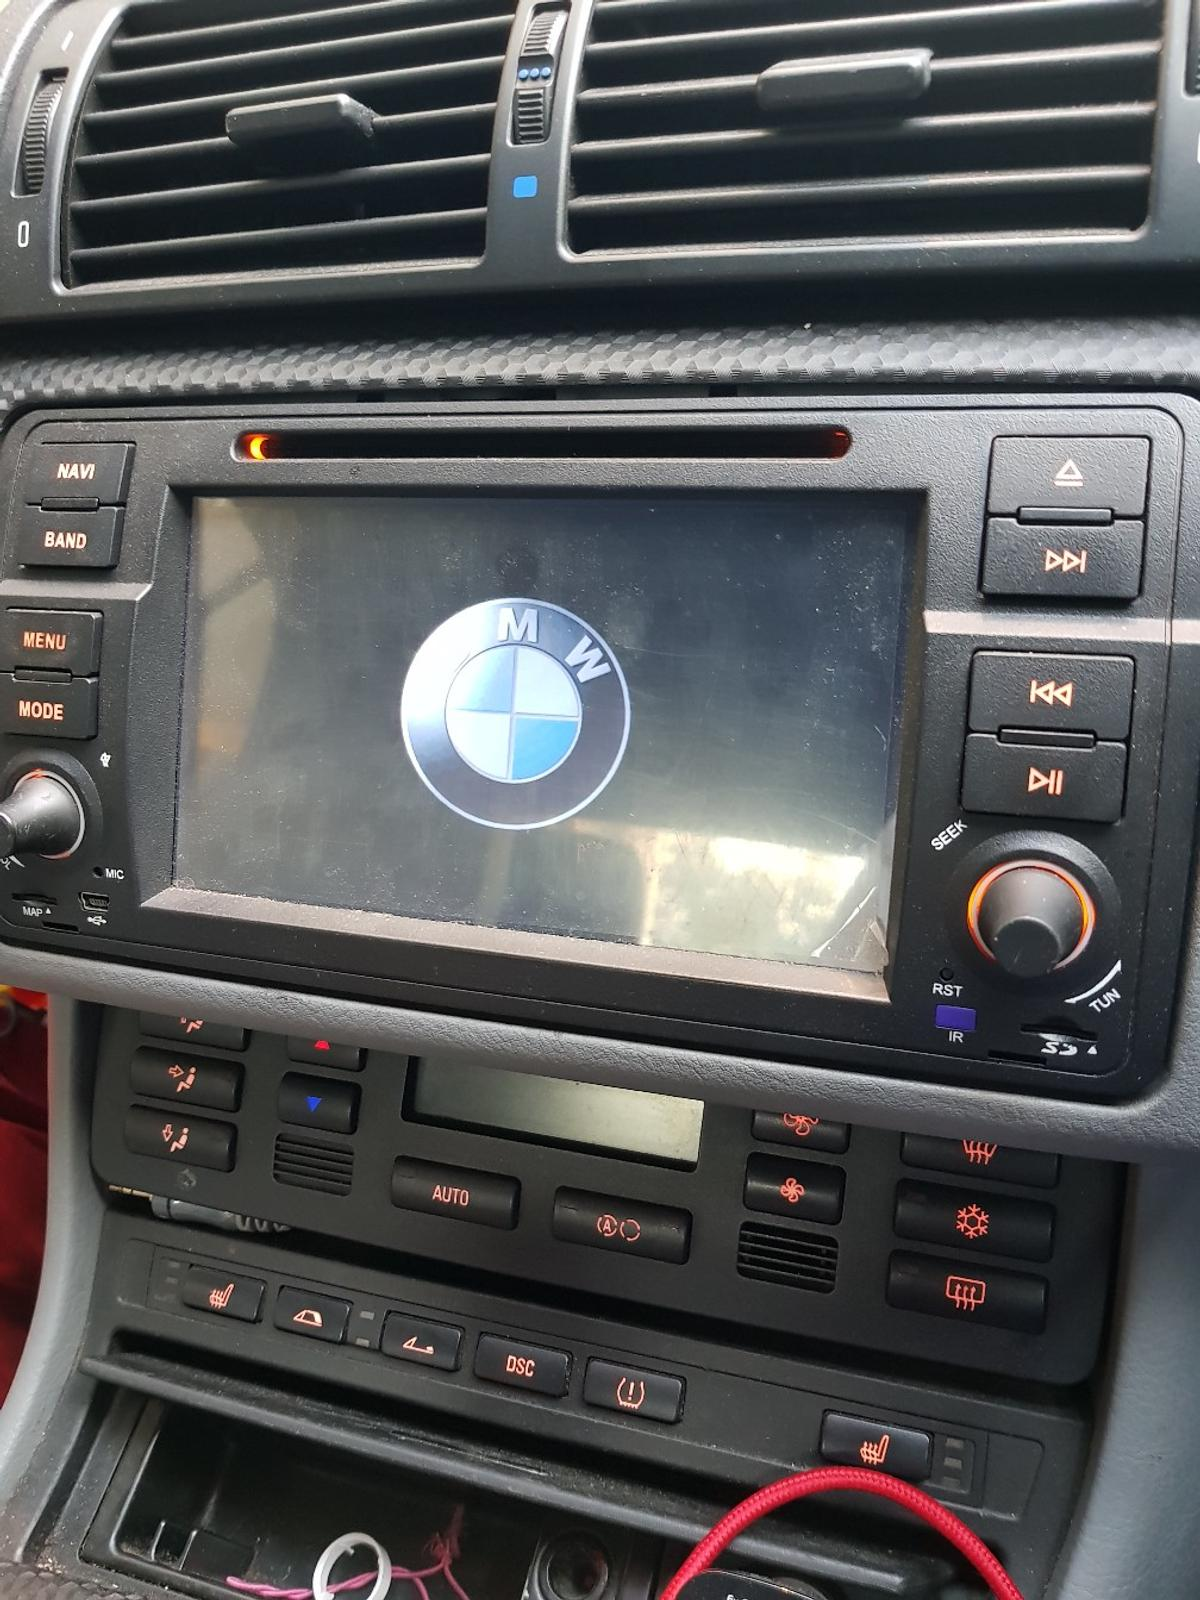 BMW E46 Android Head Unit in E7 London Borough of Newham for £165 00